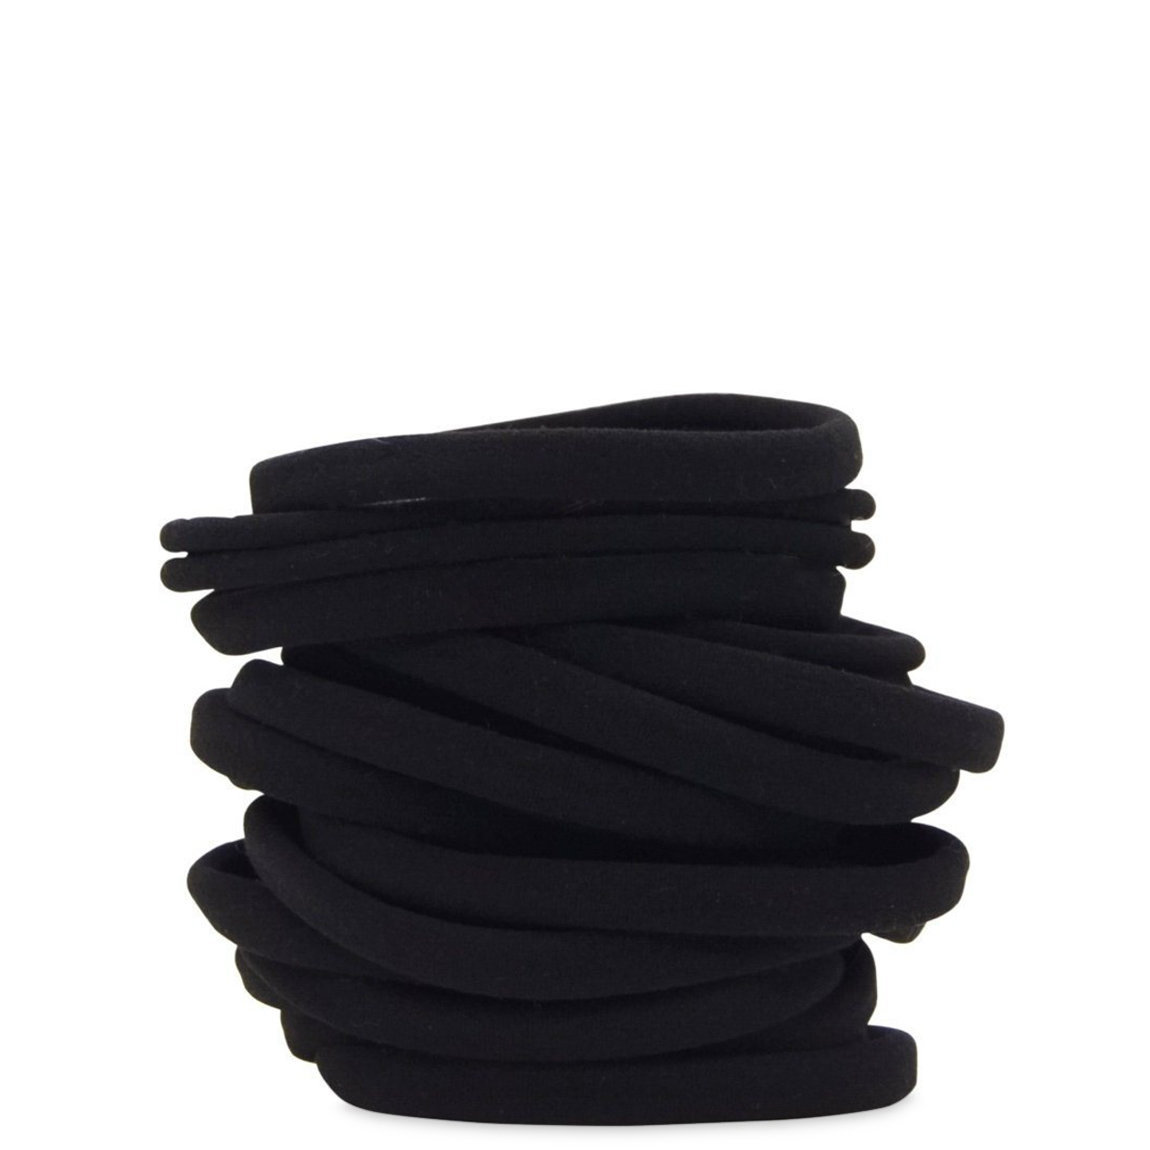 Kitsch Eco-Friendly Nylon Elastics Black alternative view 1 - product swatch.